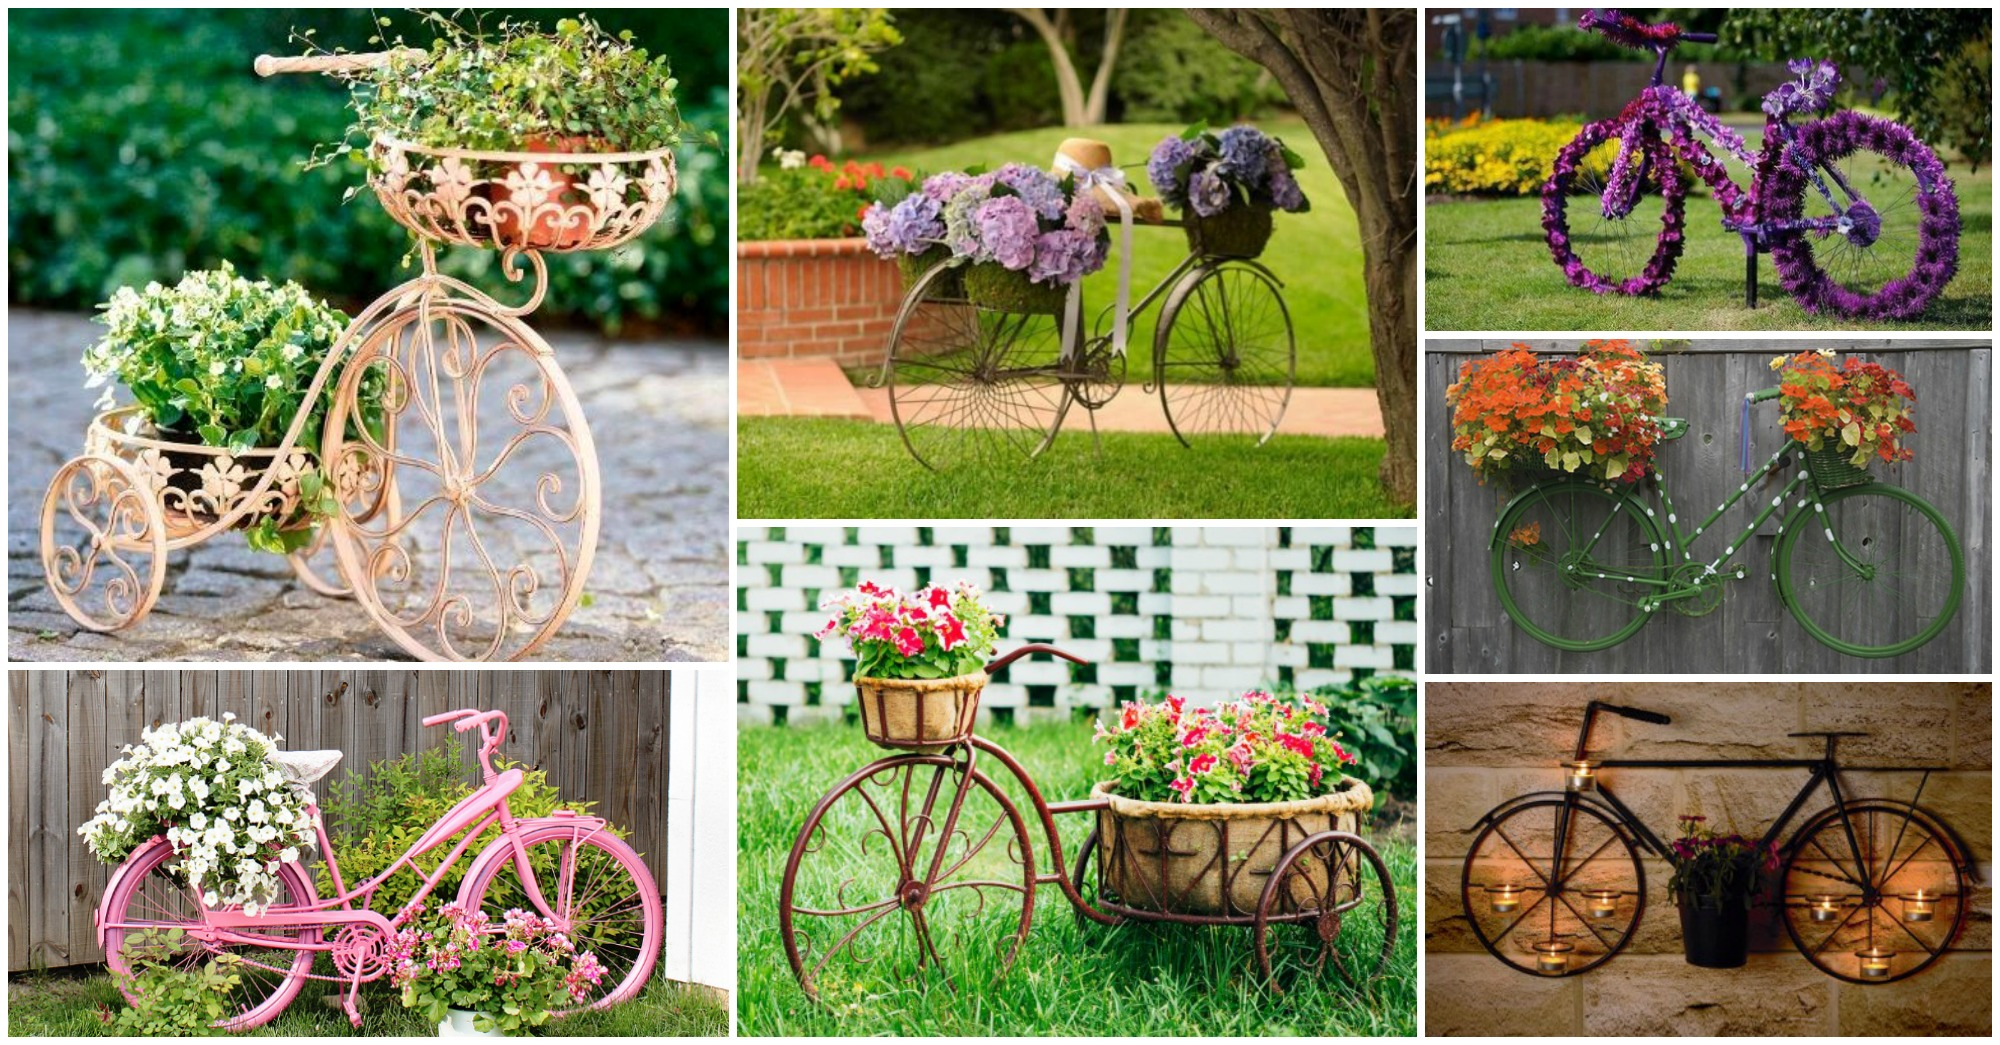 20 Awesome Bicycle Planter Ideas